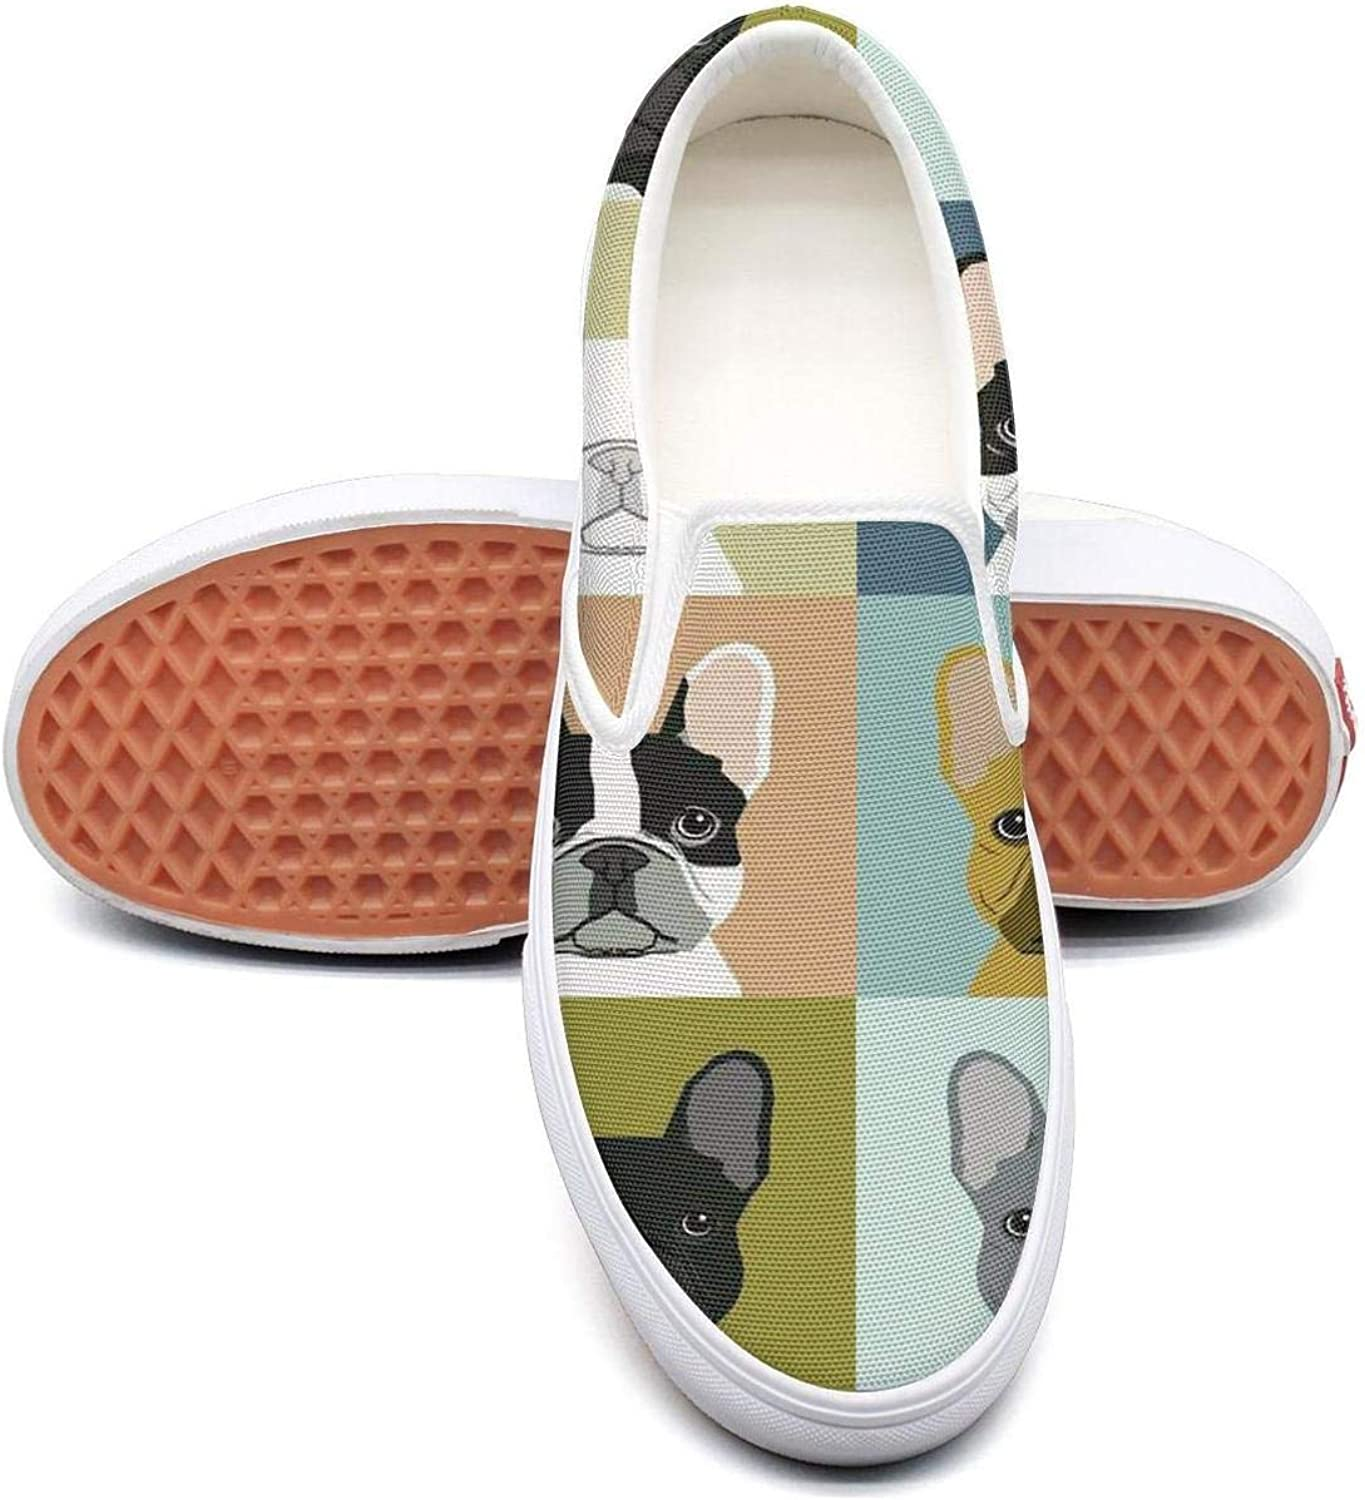 Refyds-es French Bulldog Illustration Funny Womens Fashion Slip on Low Top Lightweight Canvas Sneakers shoes